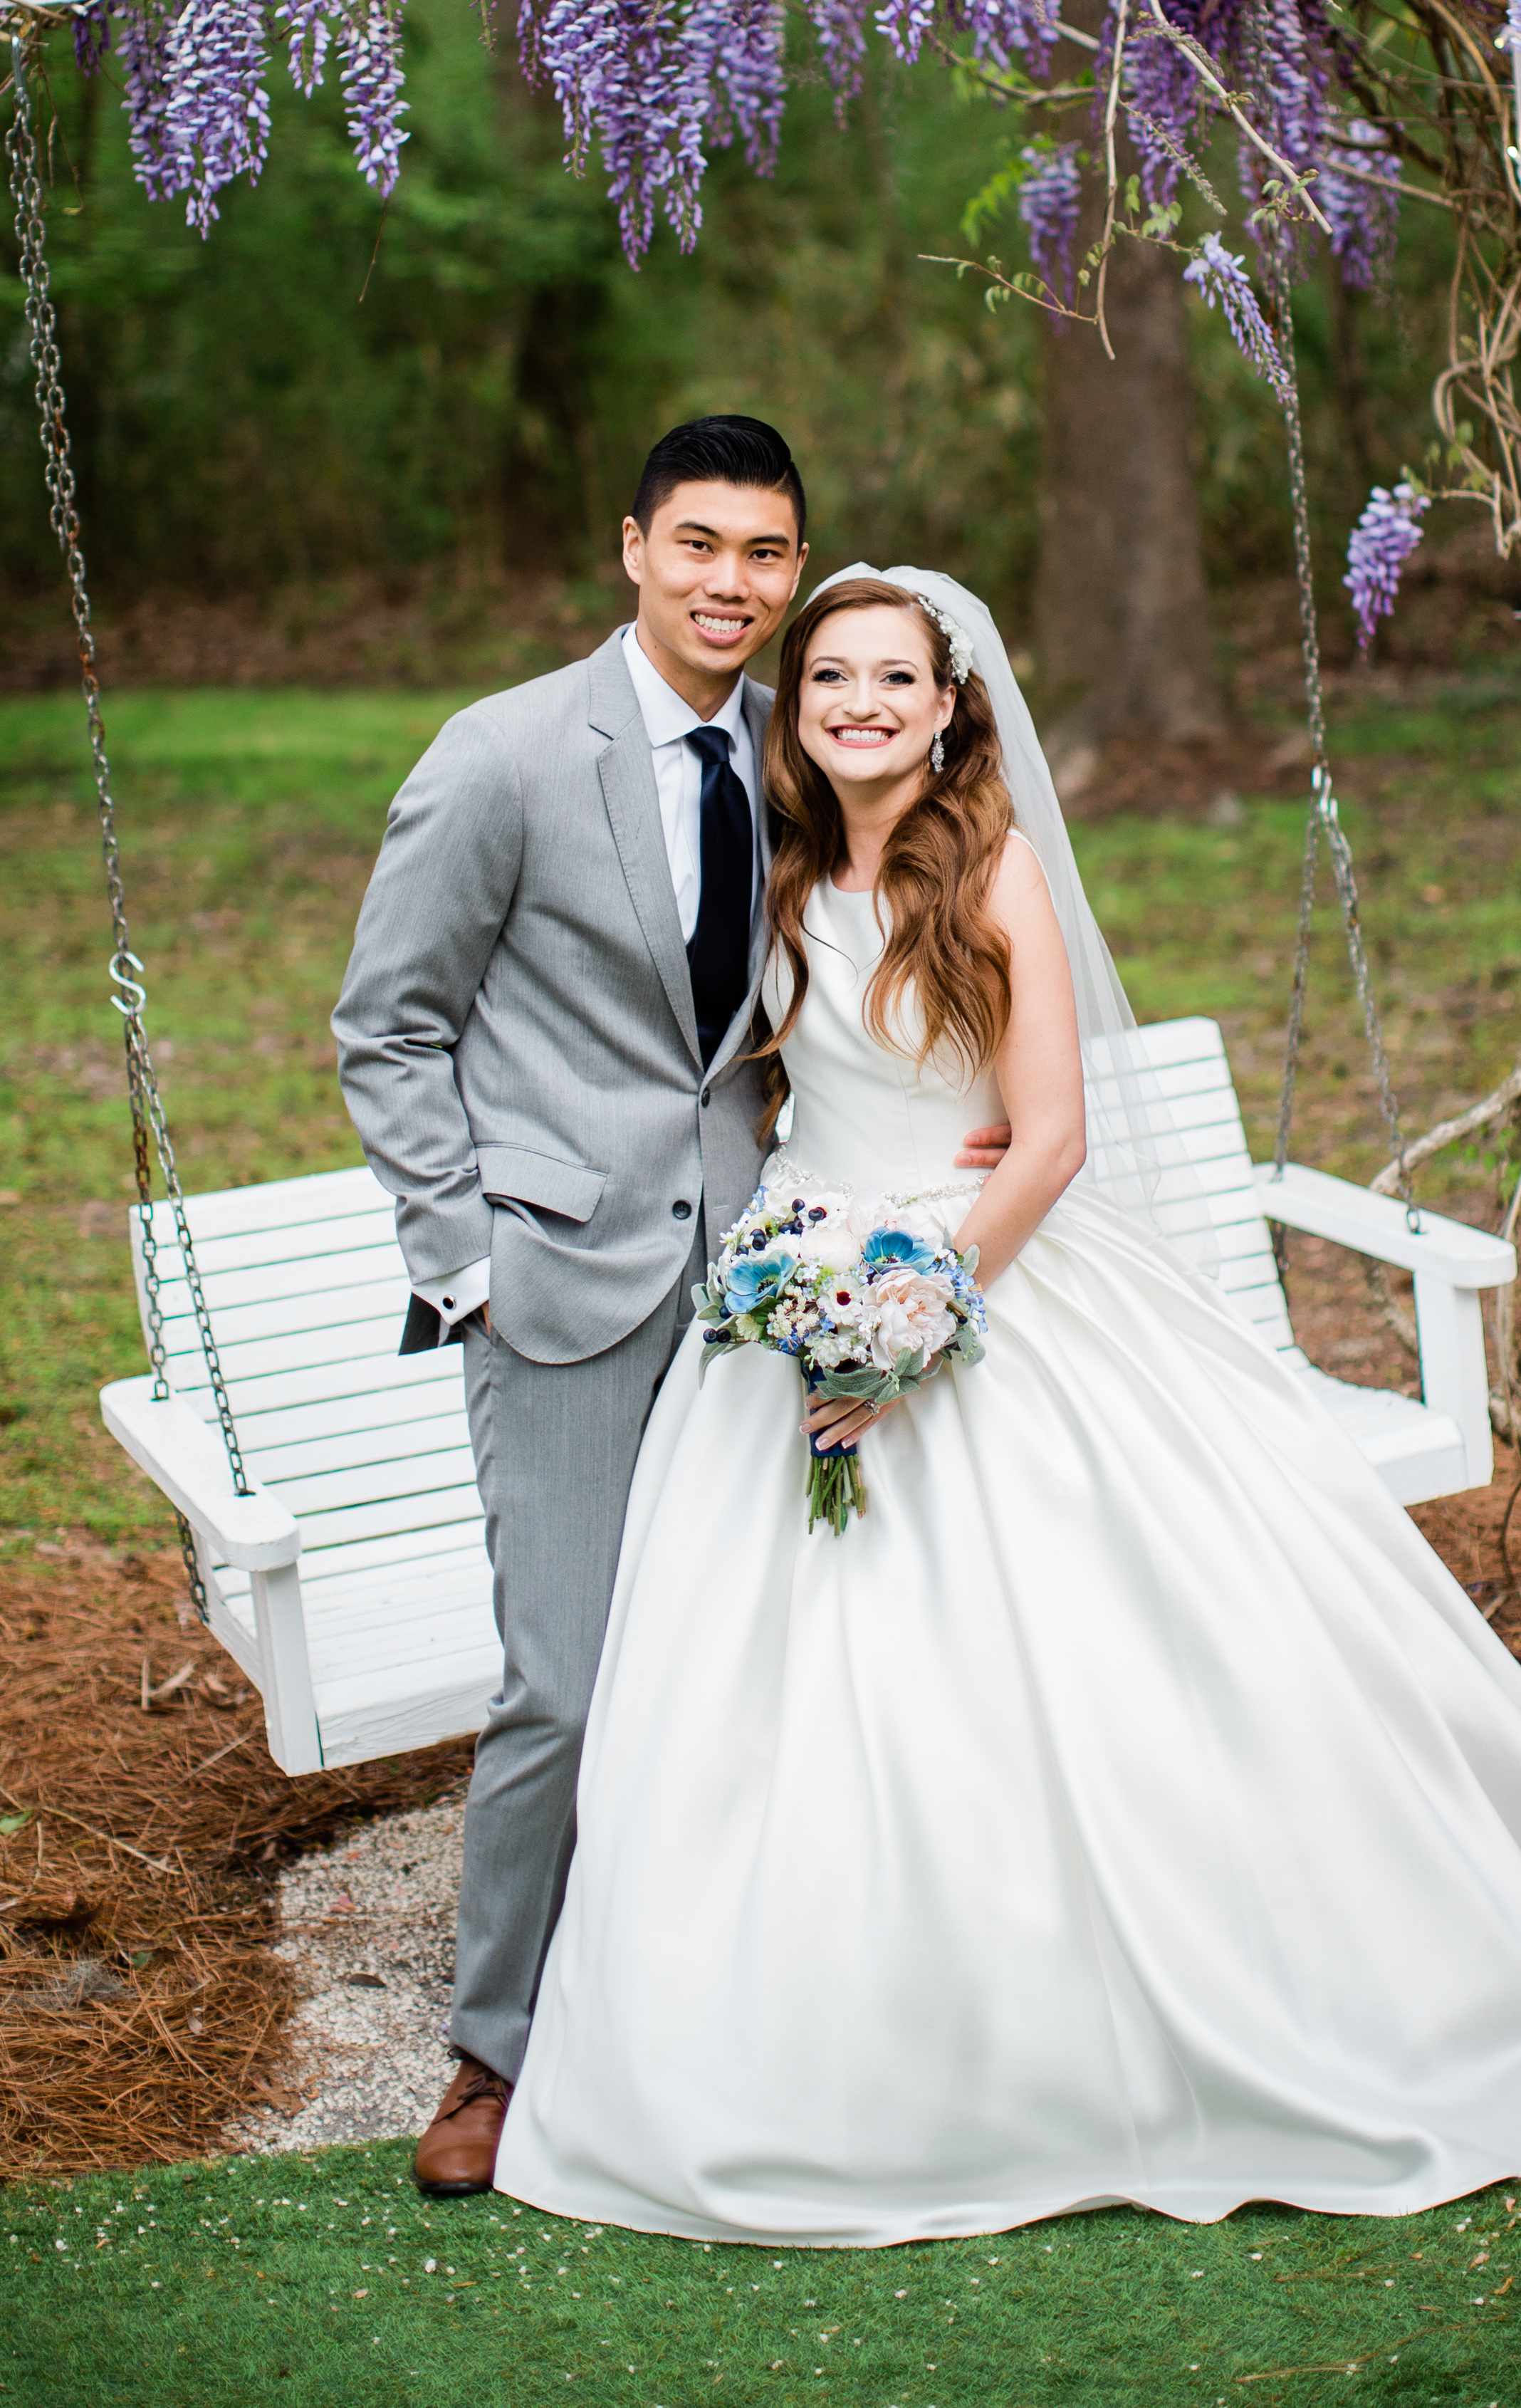 savannah-bridal-shop-i-and-b-bride-dallas-vitor-lindo-photography-verity-gown-by-maggie-sottero-savannah-wedding-gown-savannah-wedding-dress-mackey-house-wedding-4.jpg